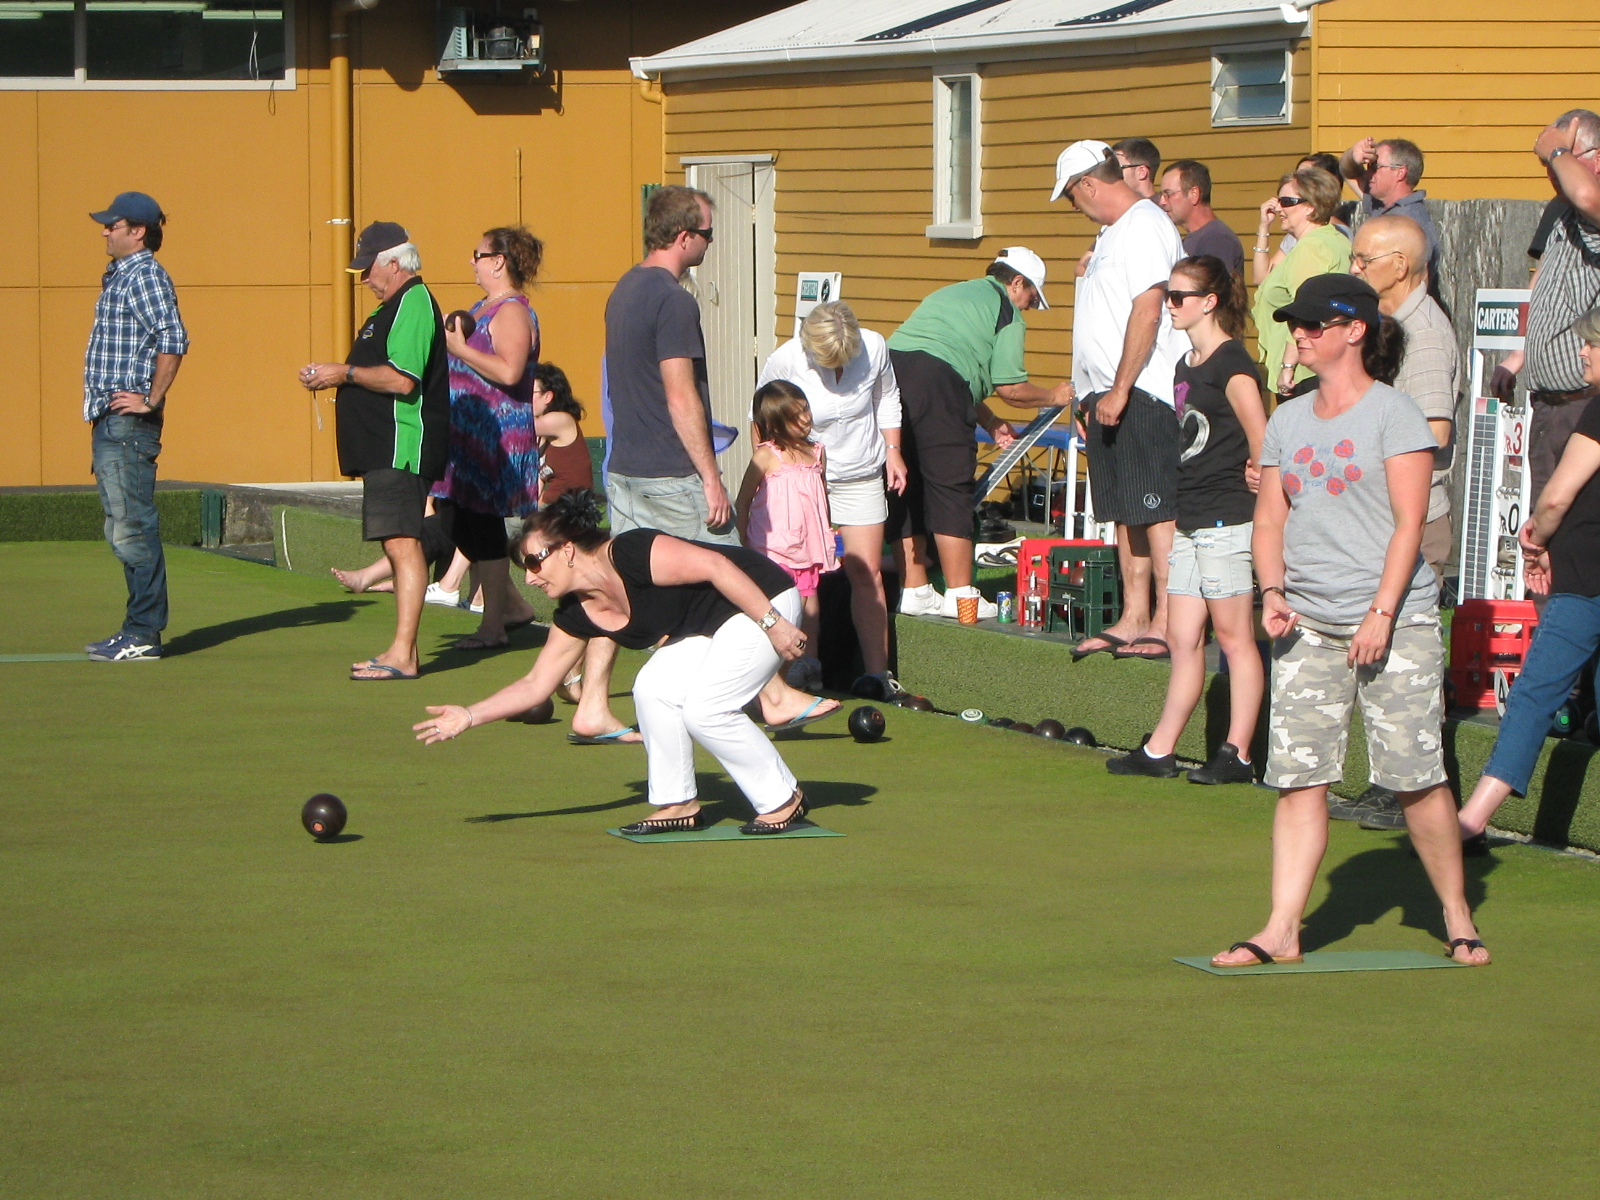 how to win at lawn bowls